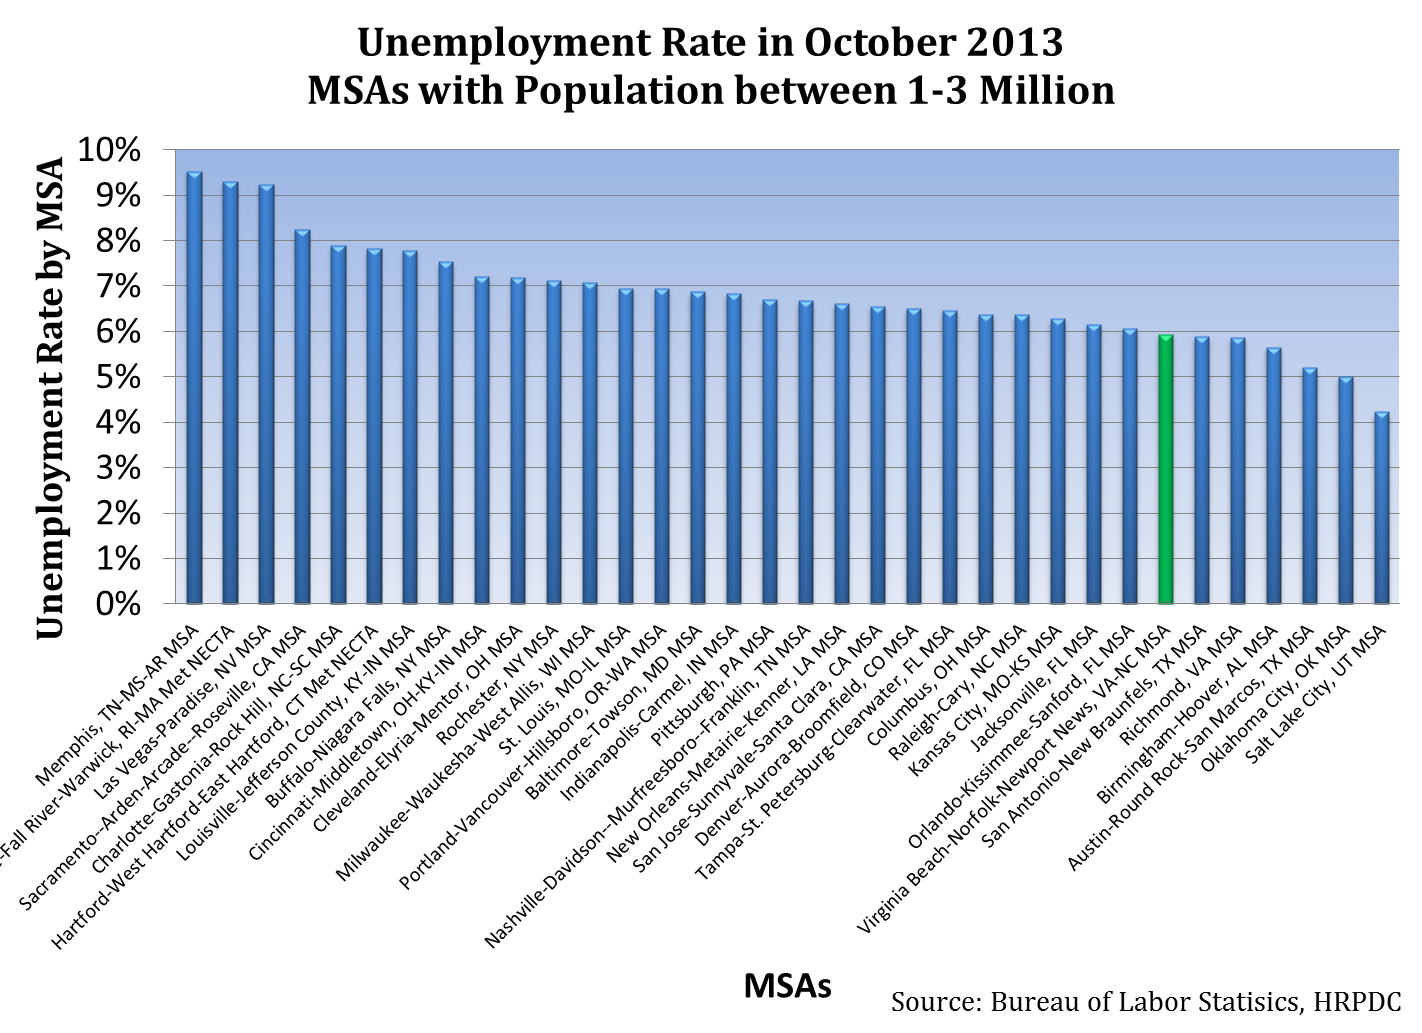 Unemployment Rate in October 2013, MSAs with Population between 1-3 Million